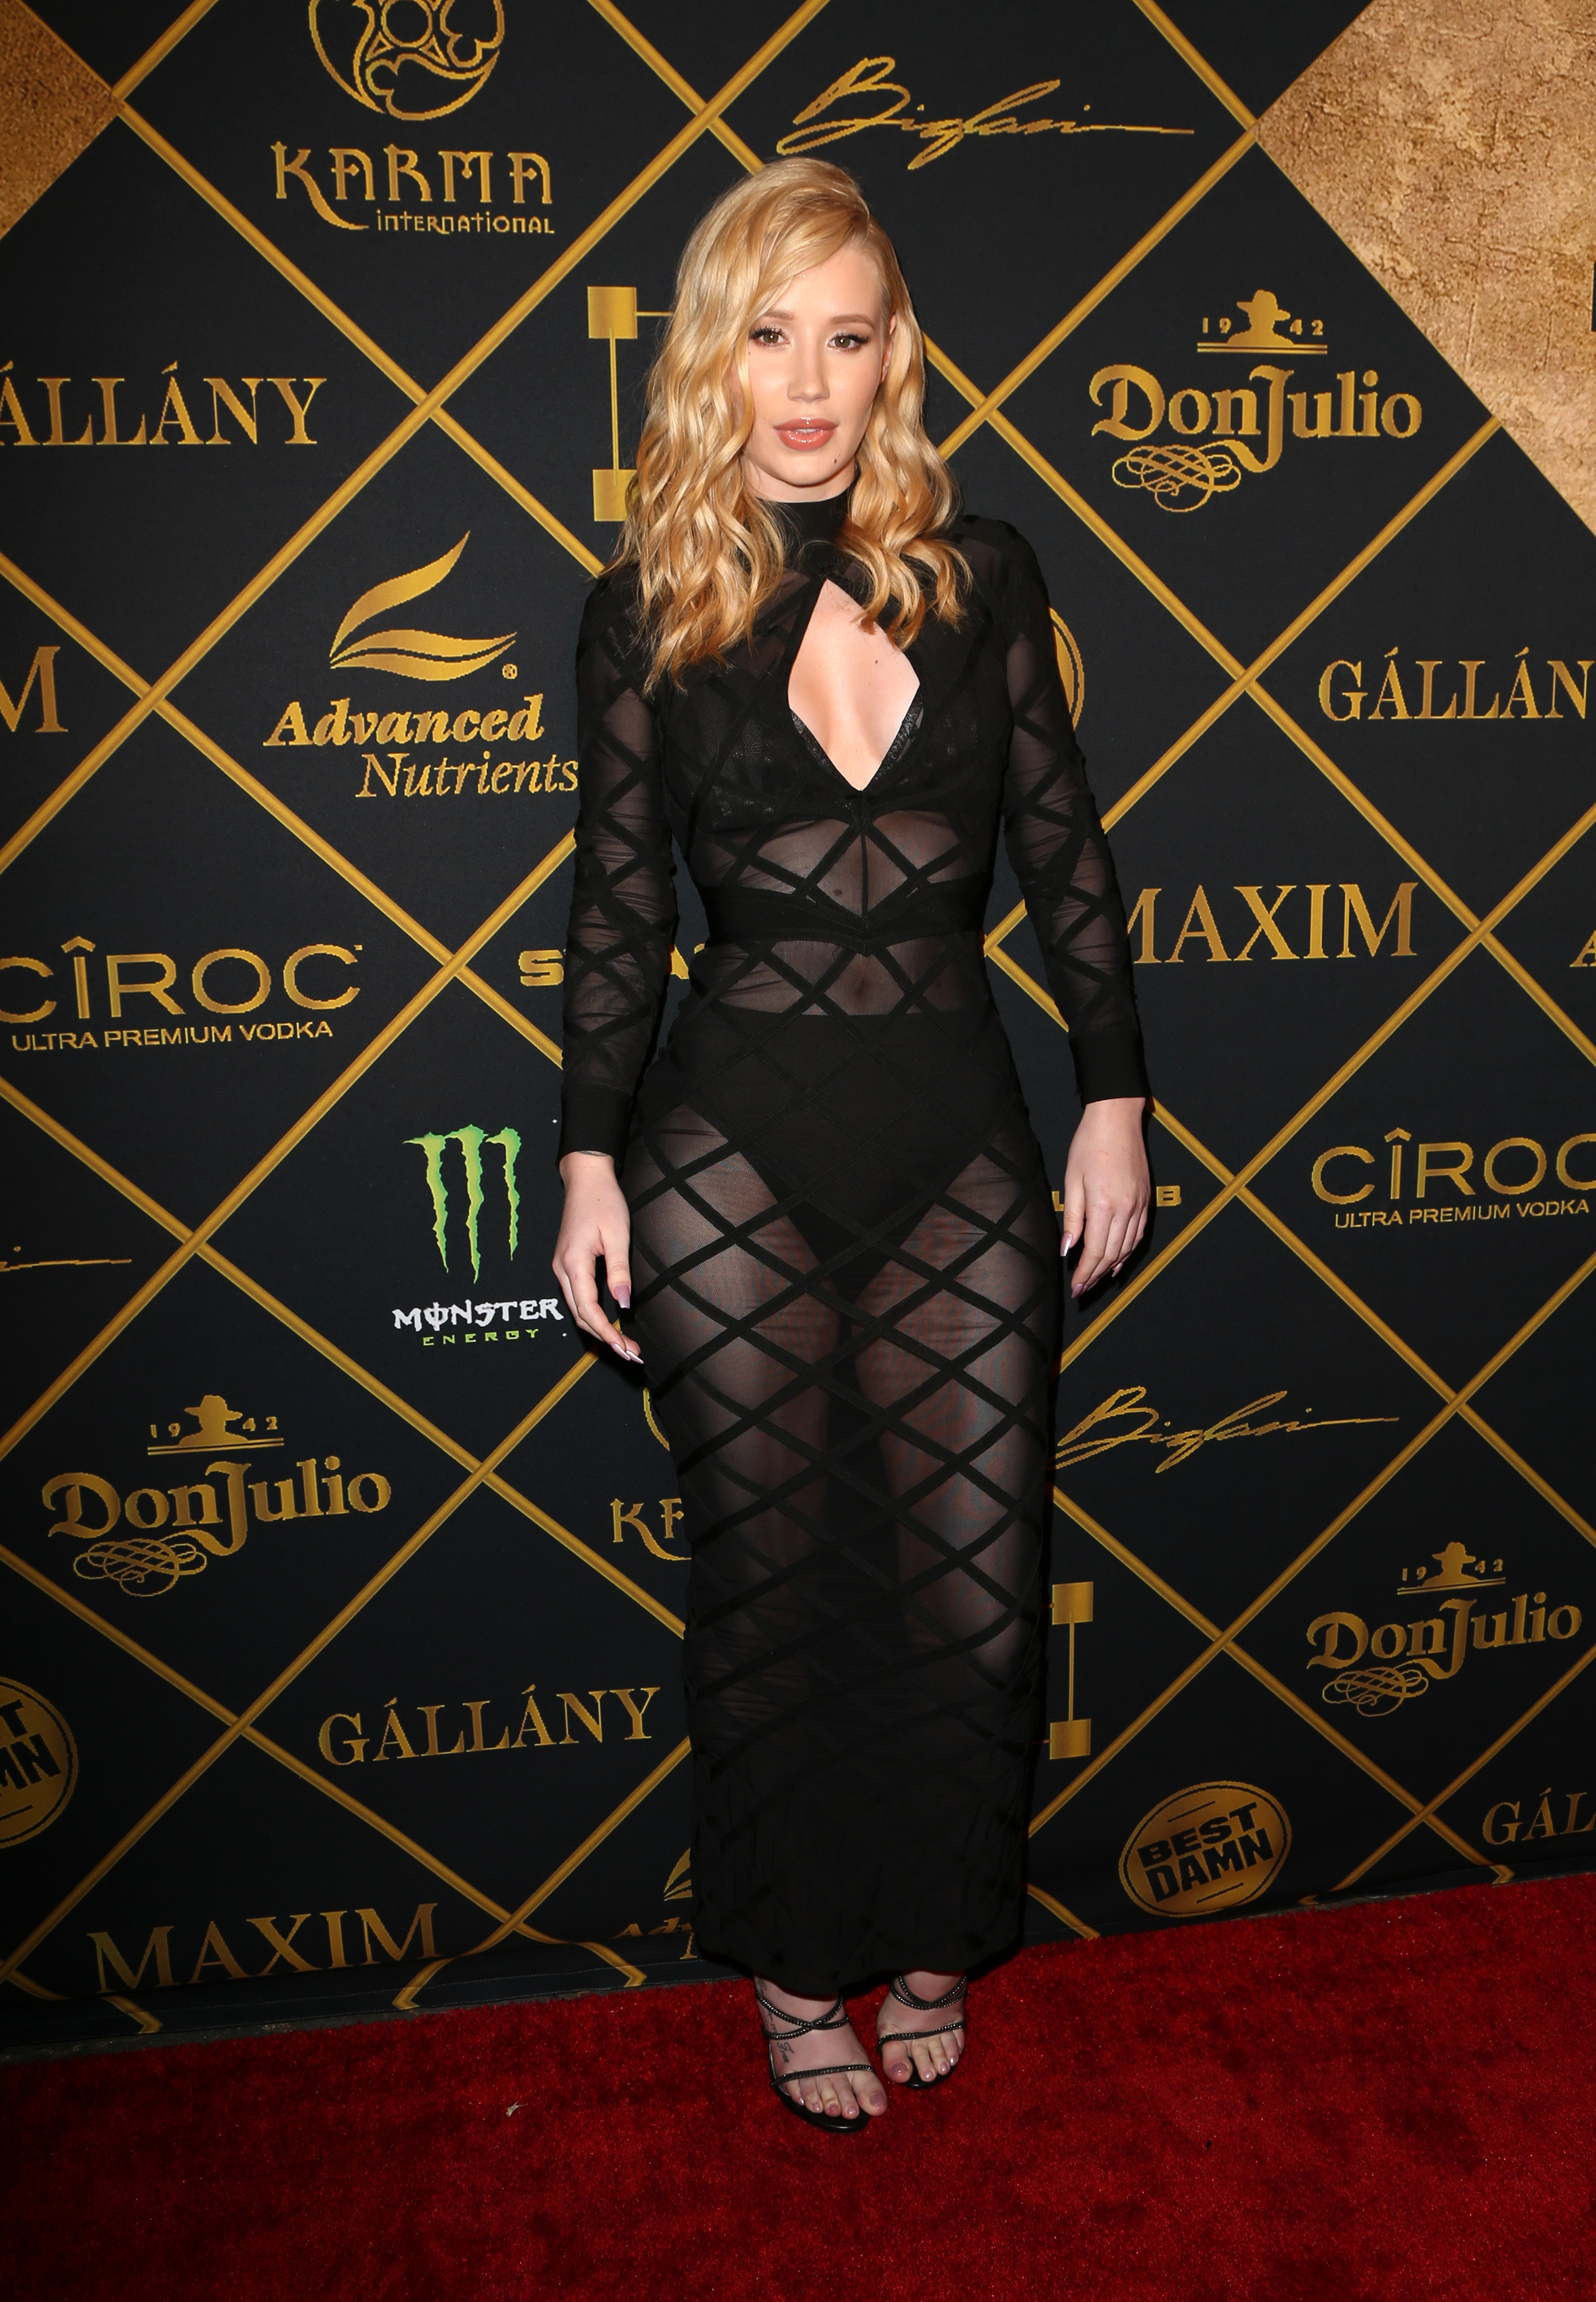 Iggy Azalea attends the Maxim Hot 100 Party in Hollywood on July 30, 2016.